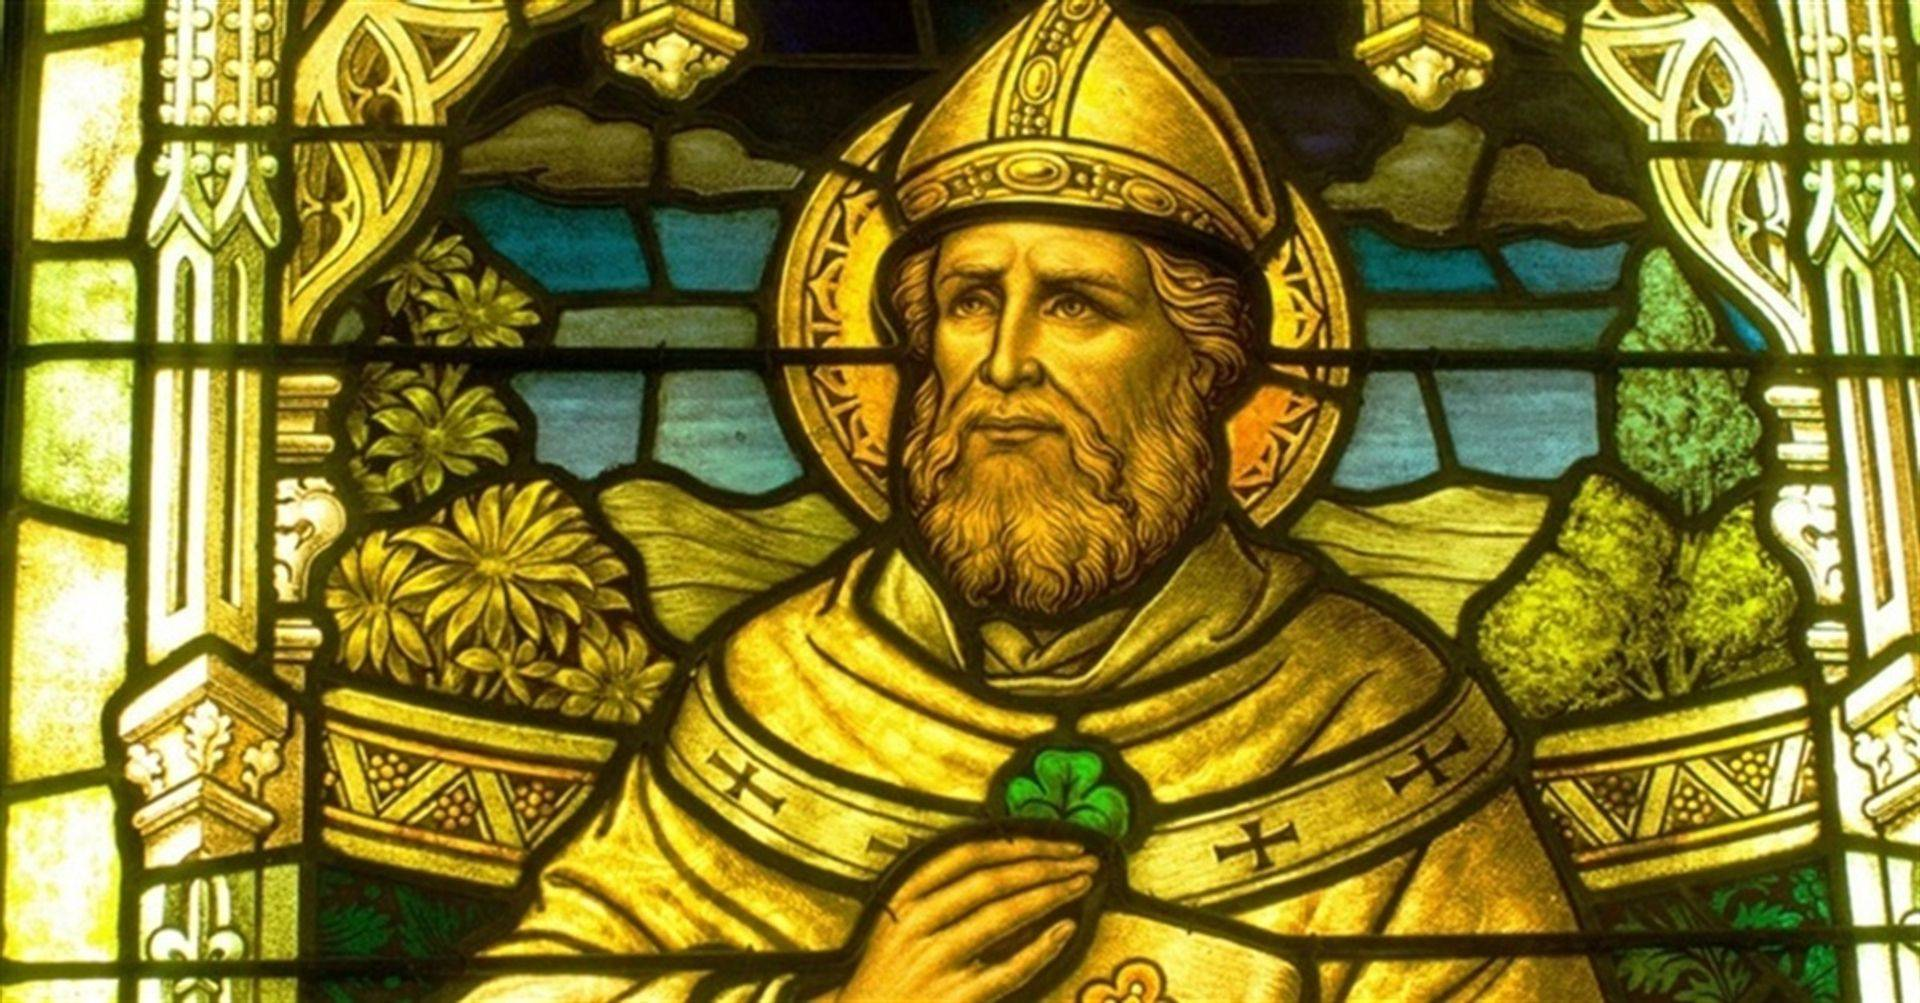 Saint Patrick, Patron Saint of Ireland